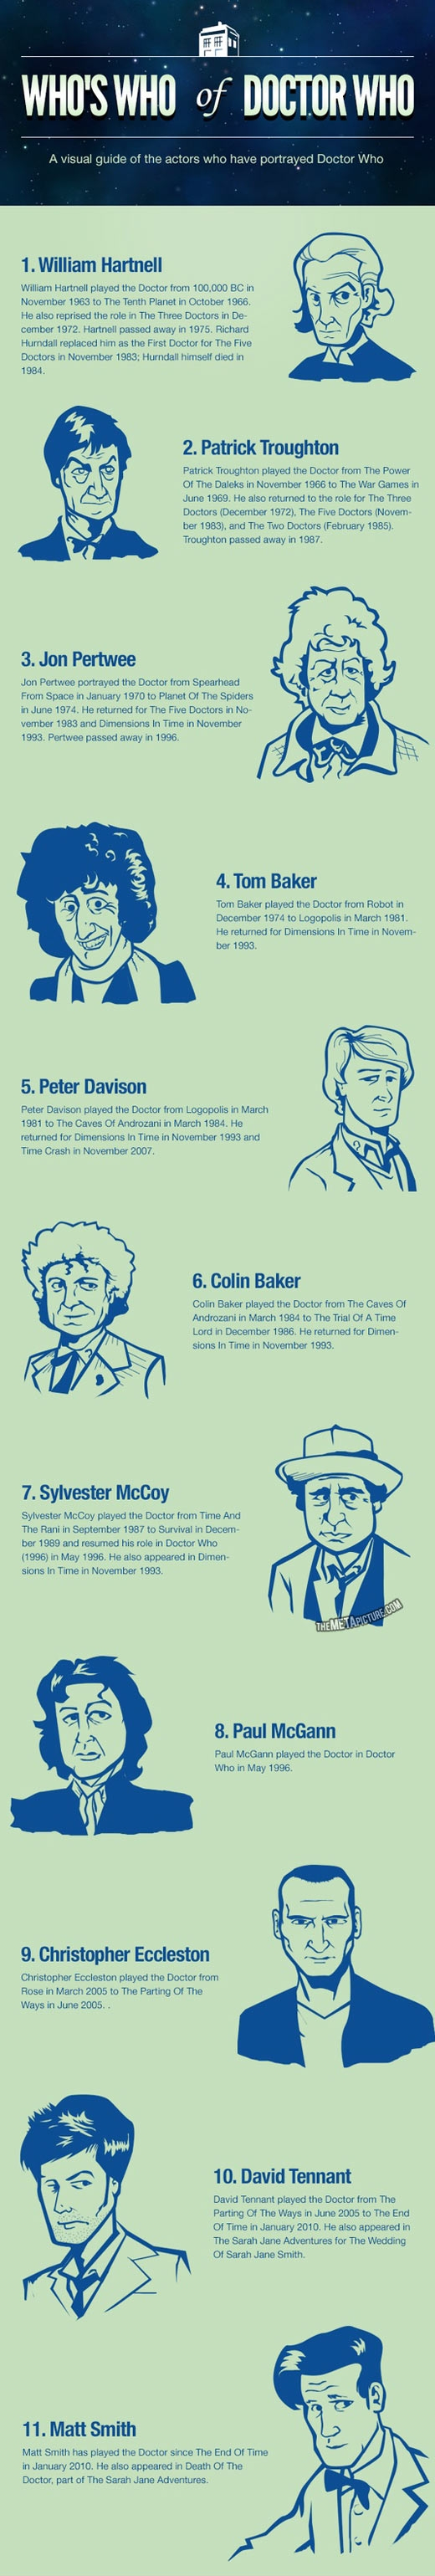 WHO'S WHO OF DOCTOR WHO.